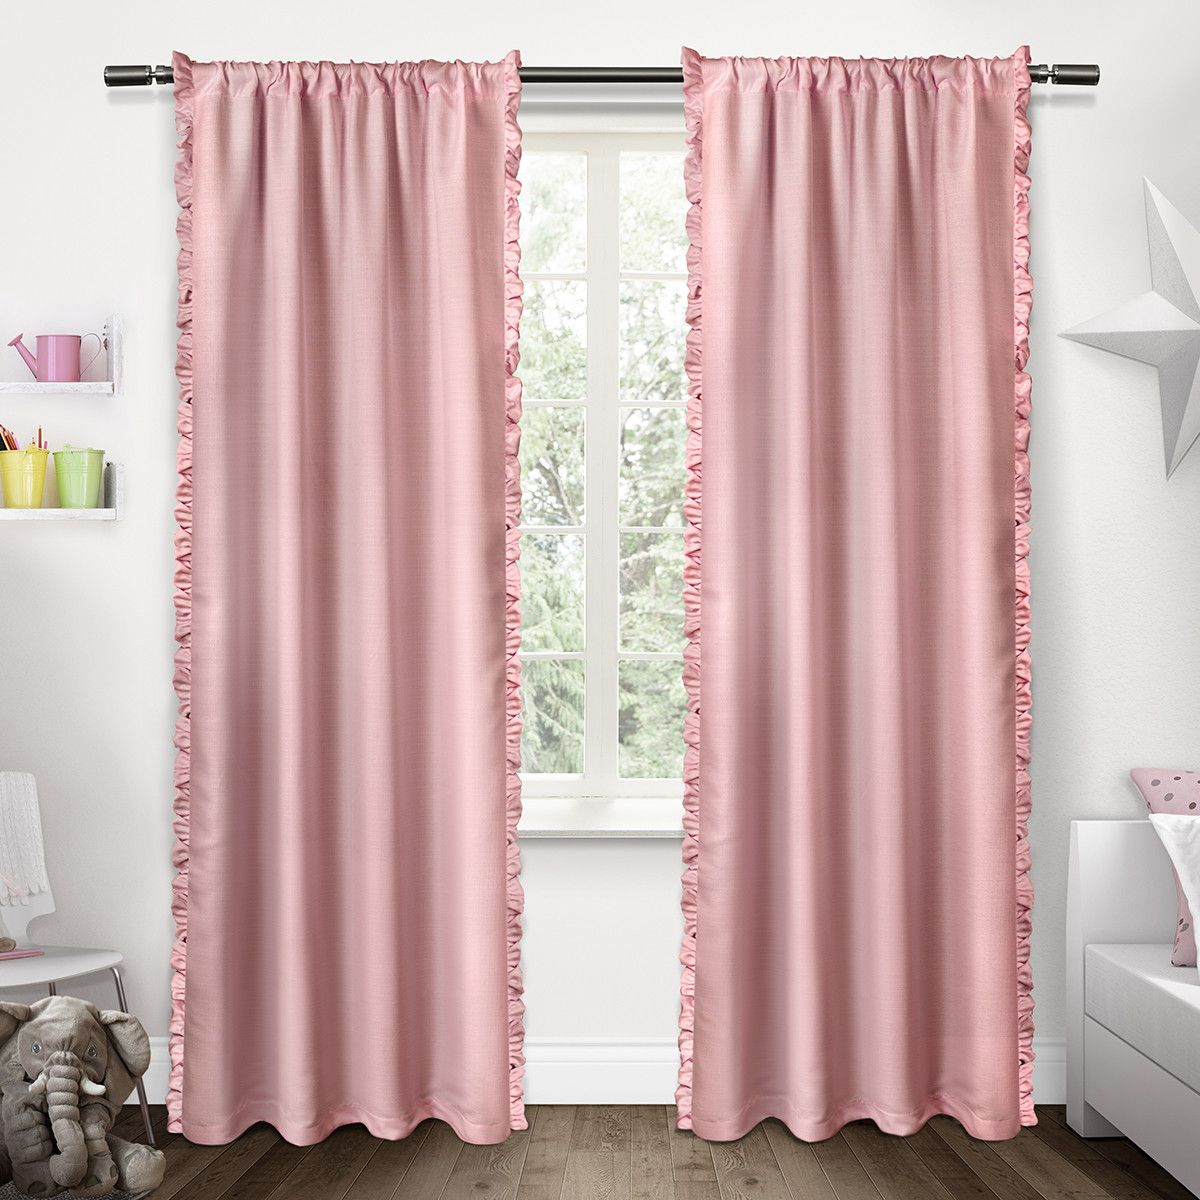 Ruffle Curtains Curtains Ruffle Curtains Panel Curtains